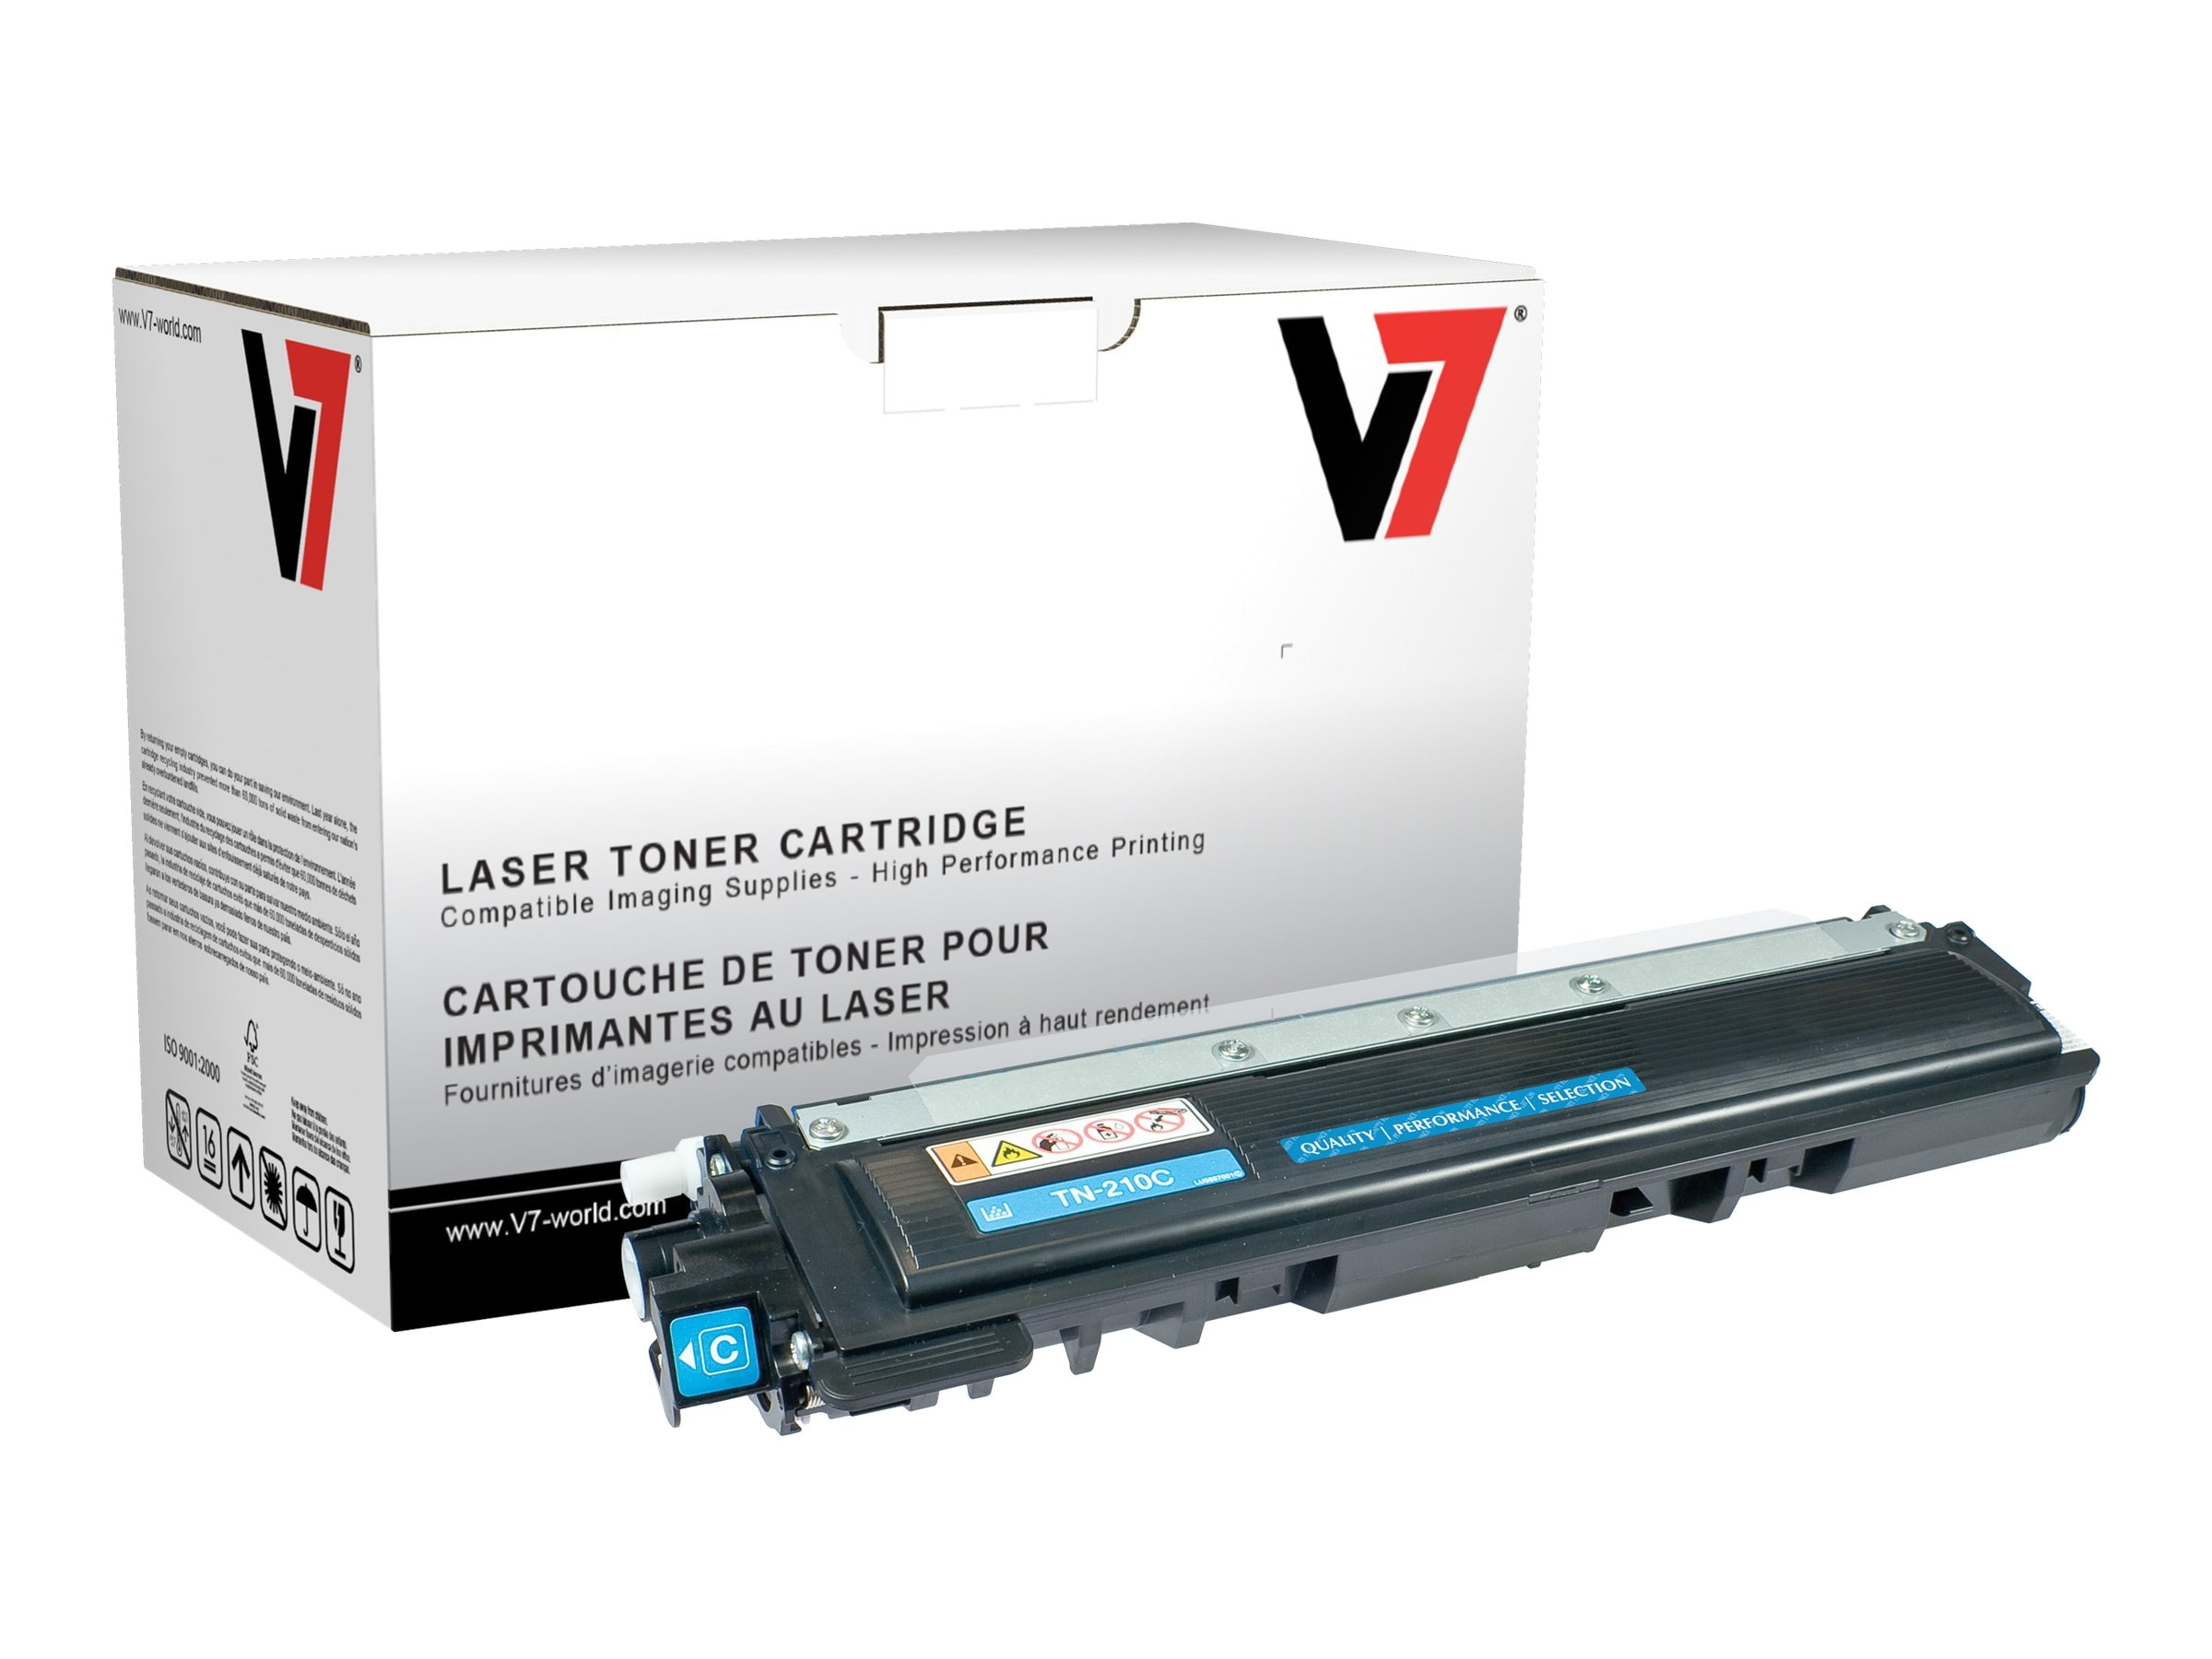 V7 TN210C Cyan High Yield Toner Cartridge for Brother HL-4040 (TAA Compliant)